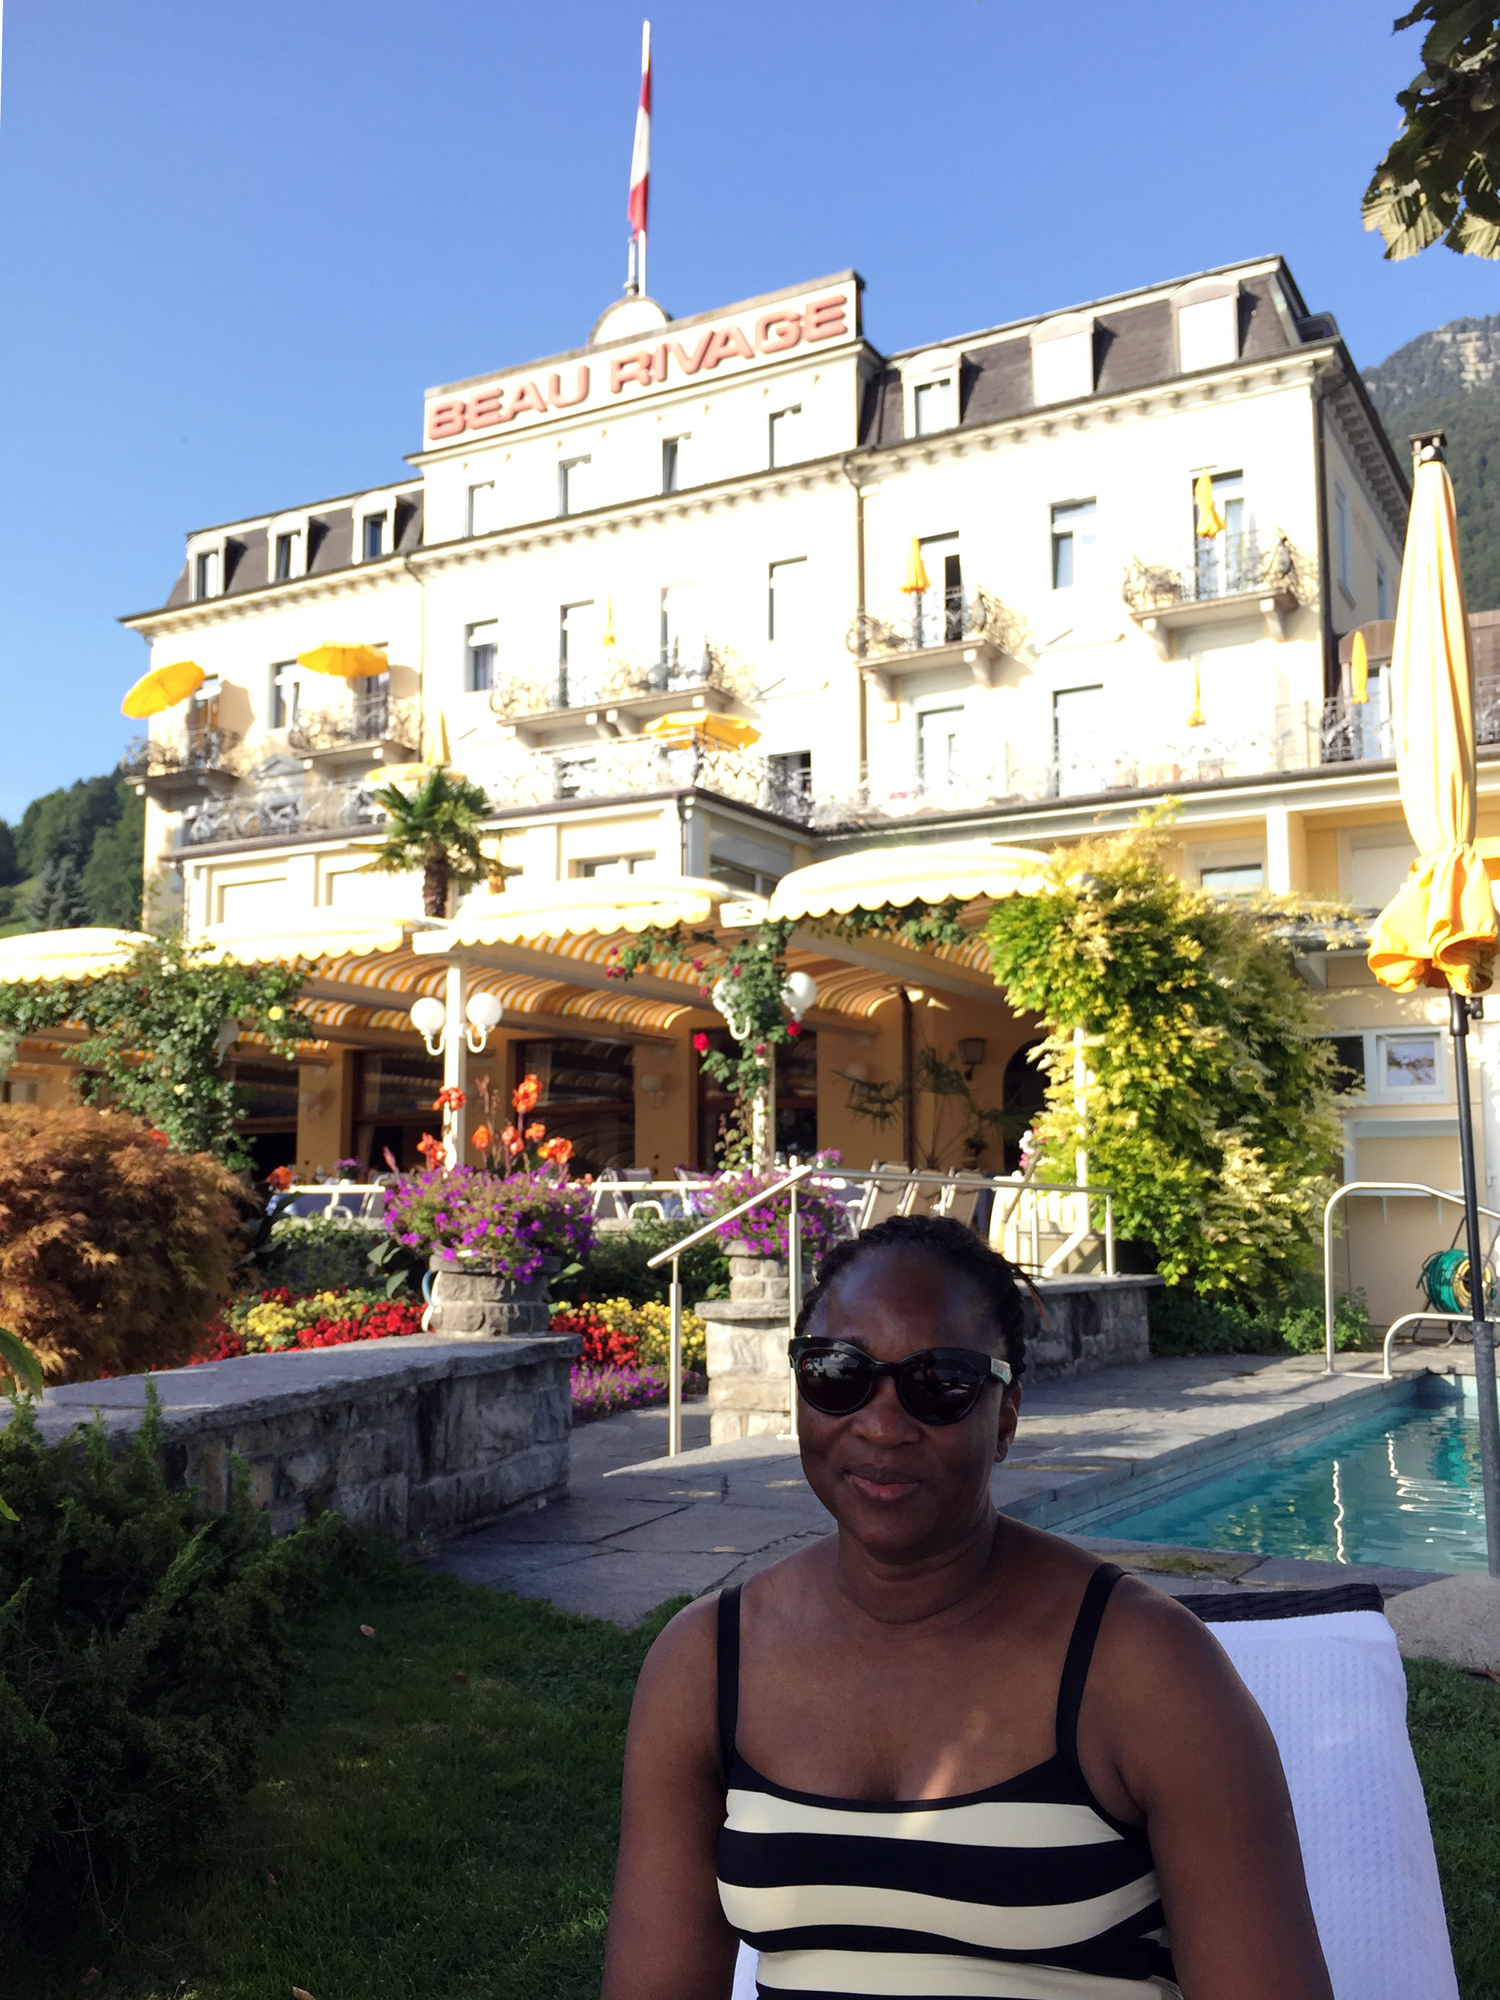 mercredie-blog-geneve-suisse-voyage-my-switzerland-grand-tour-roadtrip-europcar-accor-hotel-beau-rivage-weggis-lucerne-luzern-avis-review-piscine-pool-lake